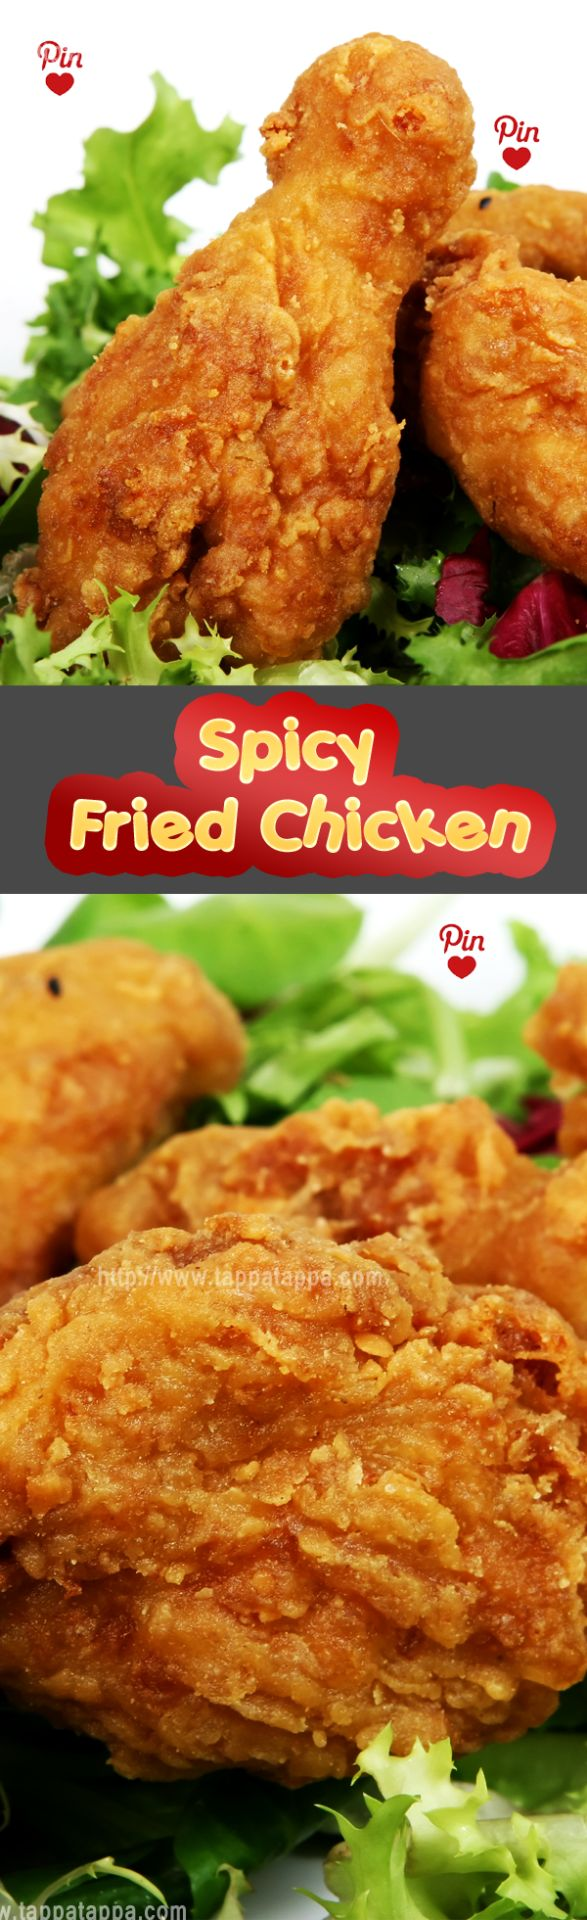 Spicy Fried Chicken Recipe  Here classic buttermilk fried chicken gets a spicy t…